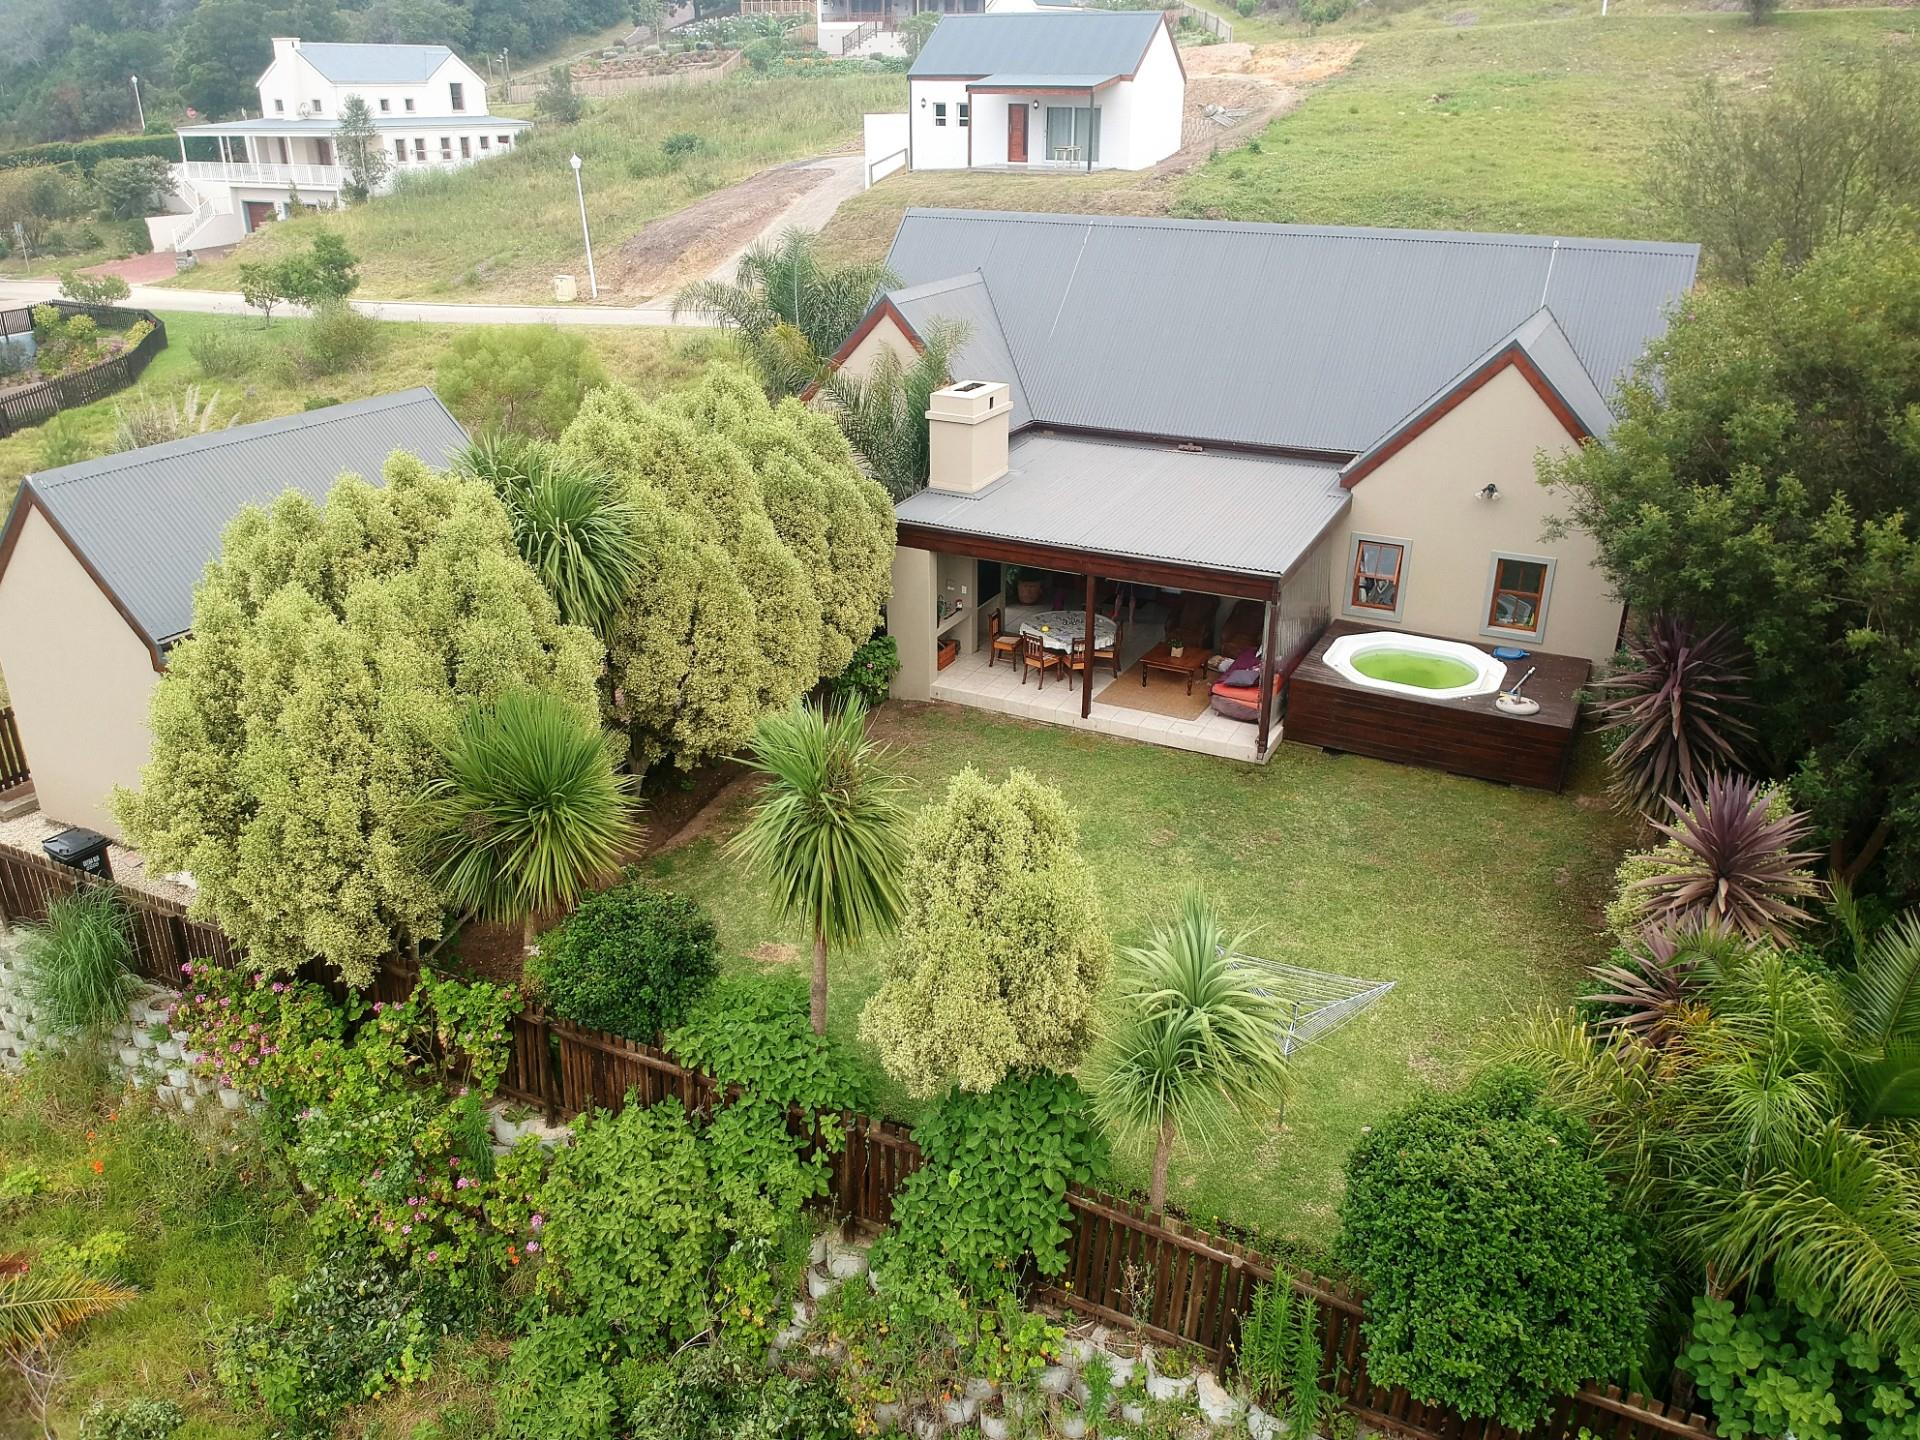 3 Bedroom House For Sale in Green Pastures